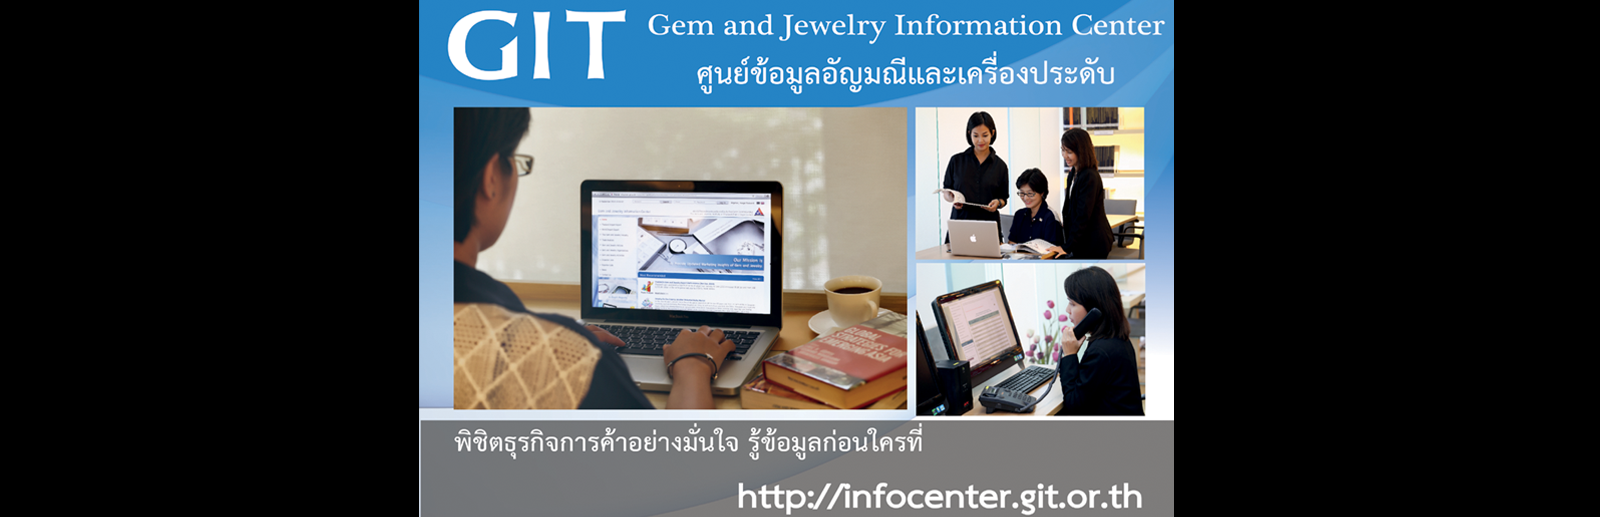 GEM AND JEWELRY INFORMATION CENTER